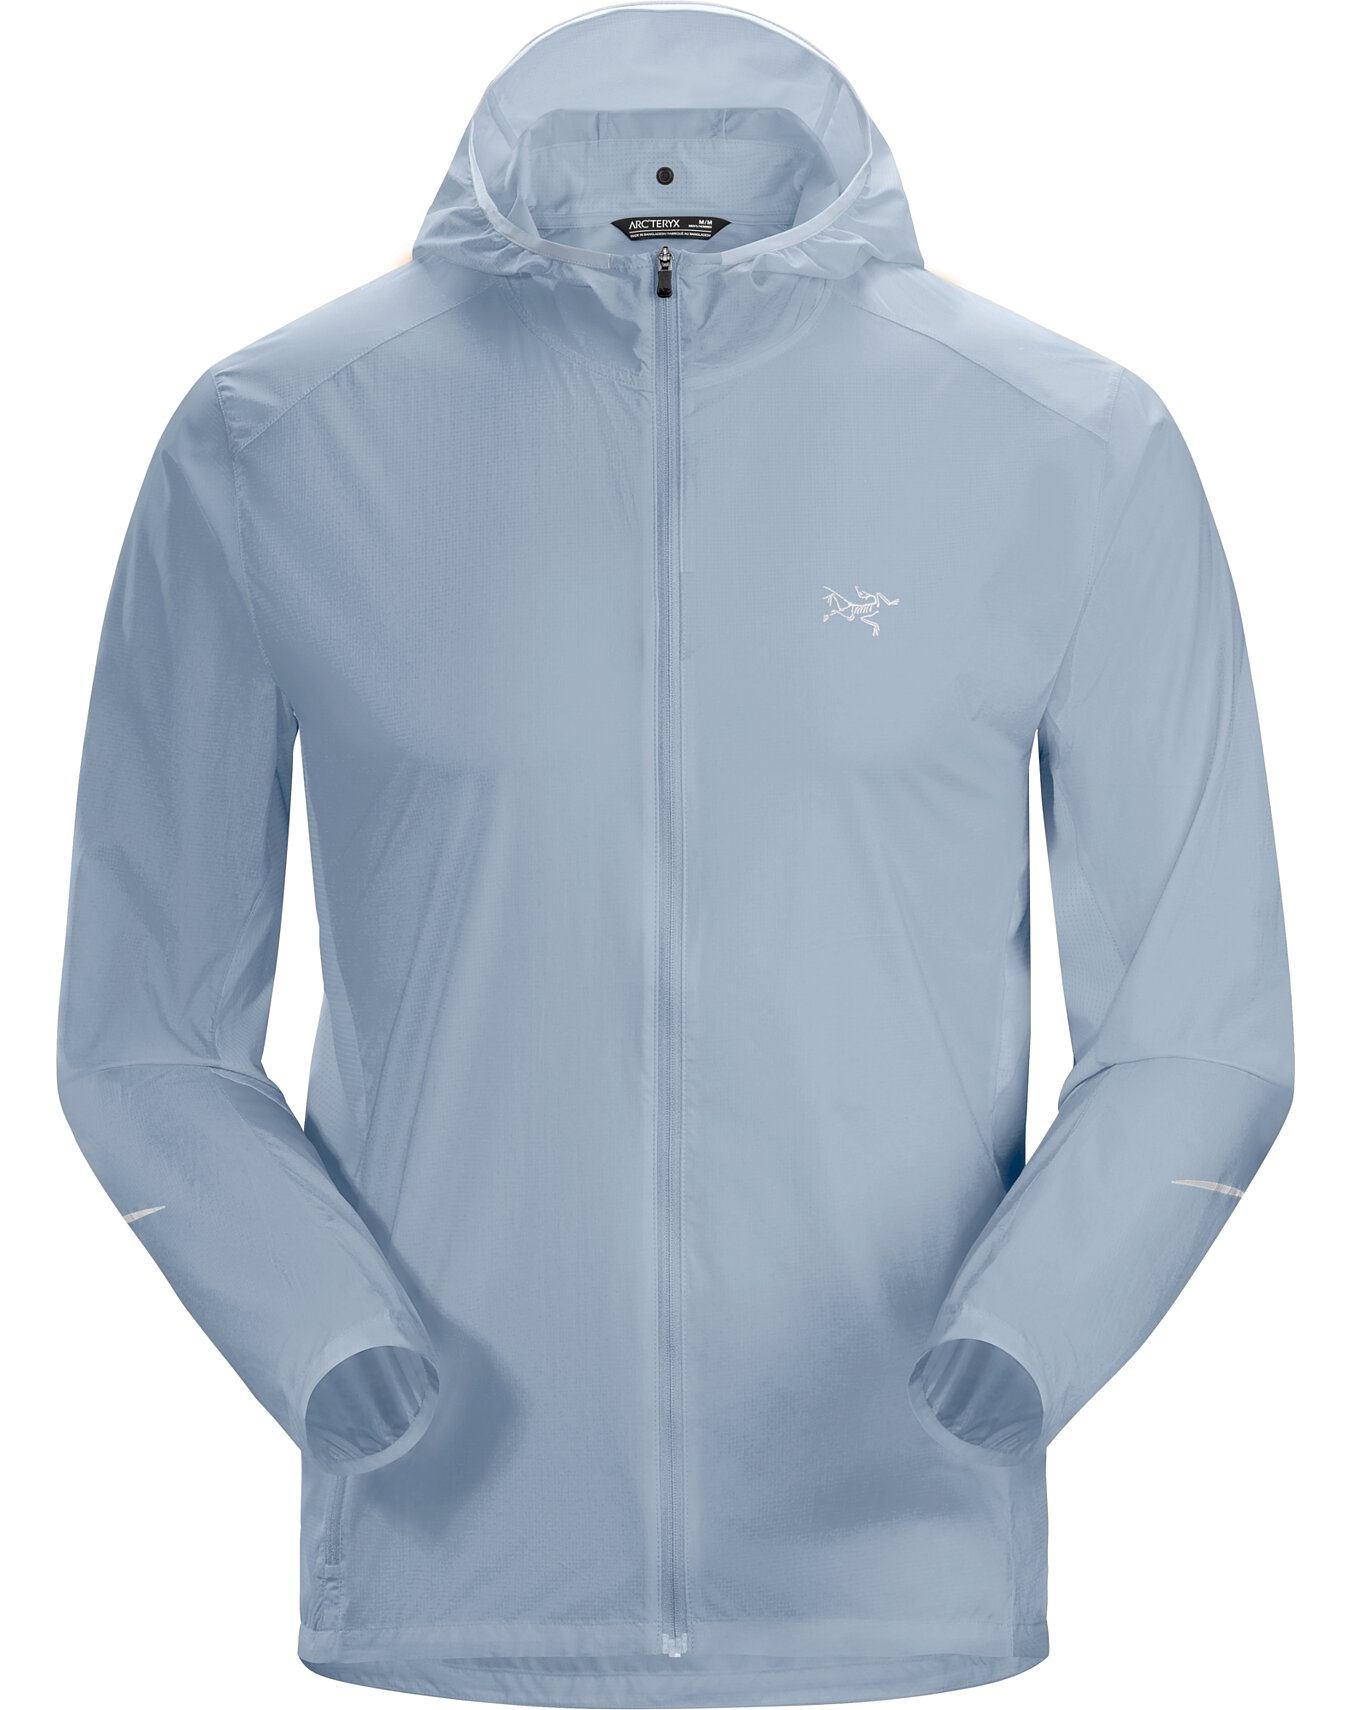 Incendo Hoody Men's